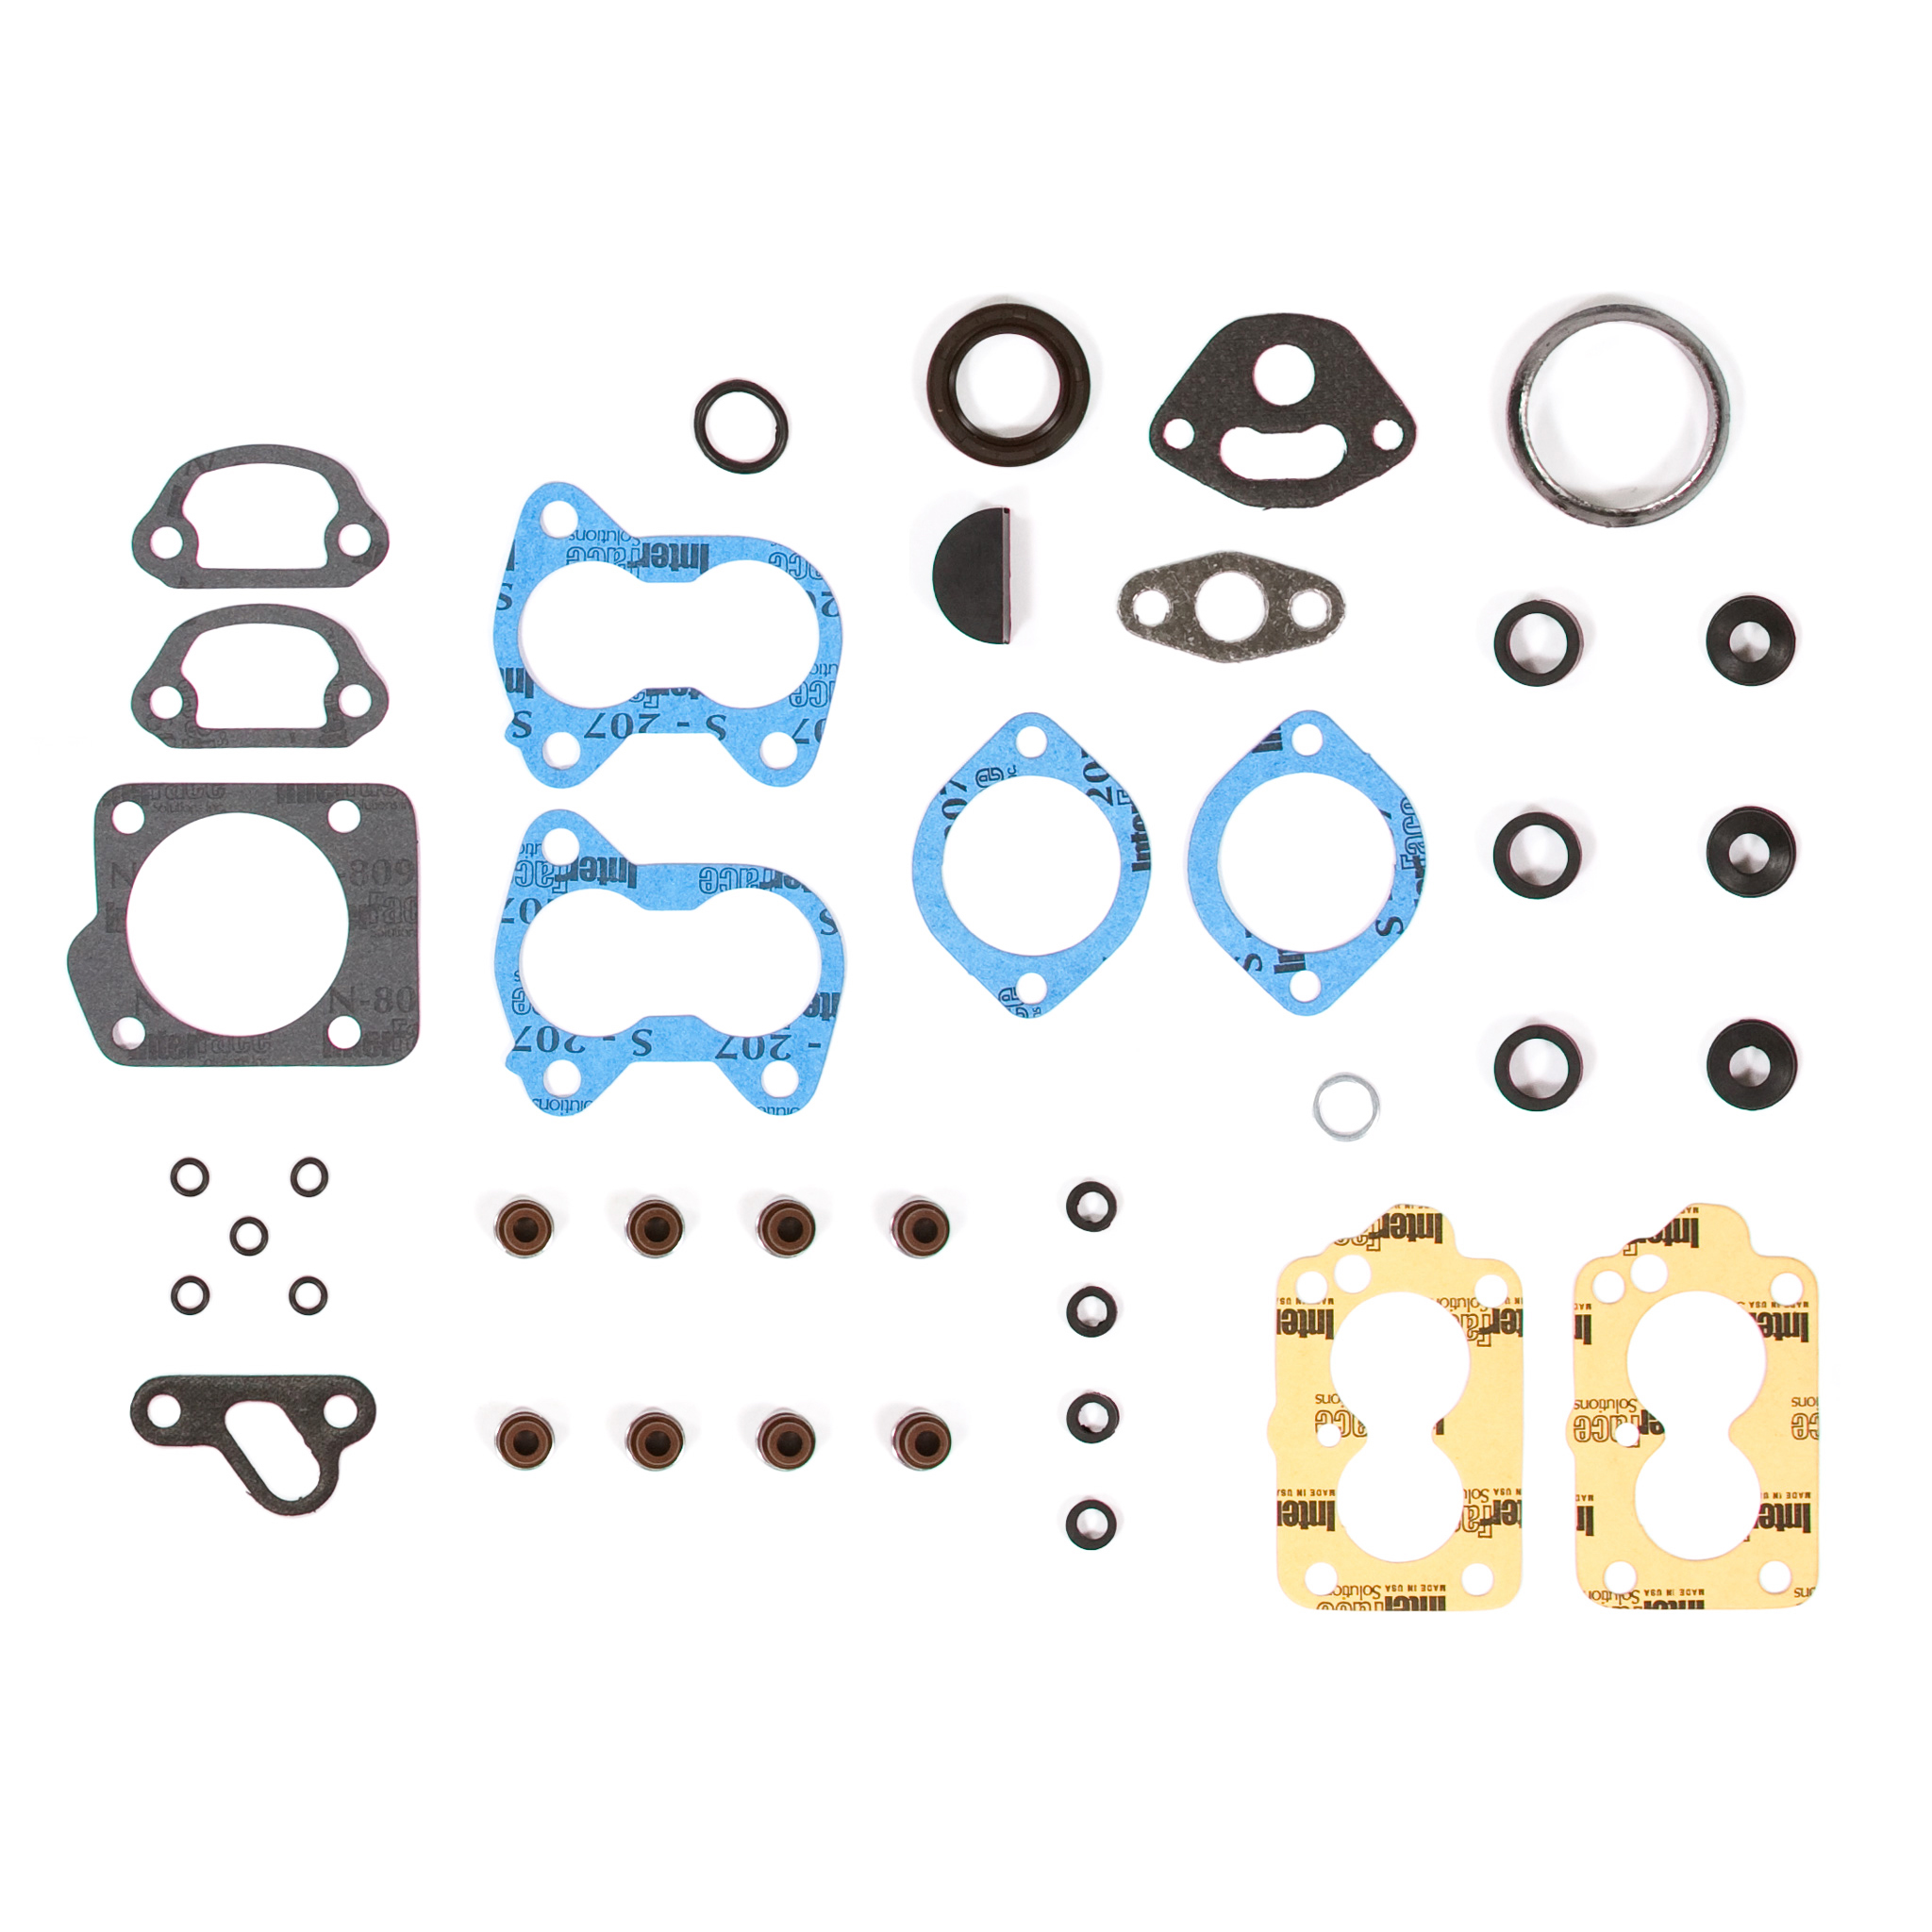 Head Gasket Set Fit 89-95 Isuzu Amigo Impulse Pickup Trooper 2 0 2 3